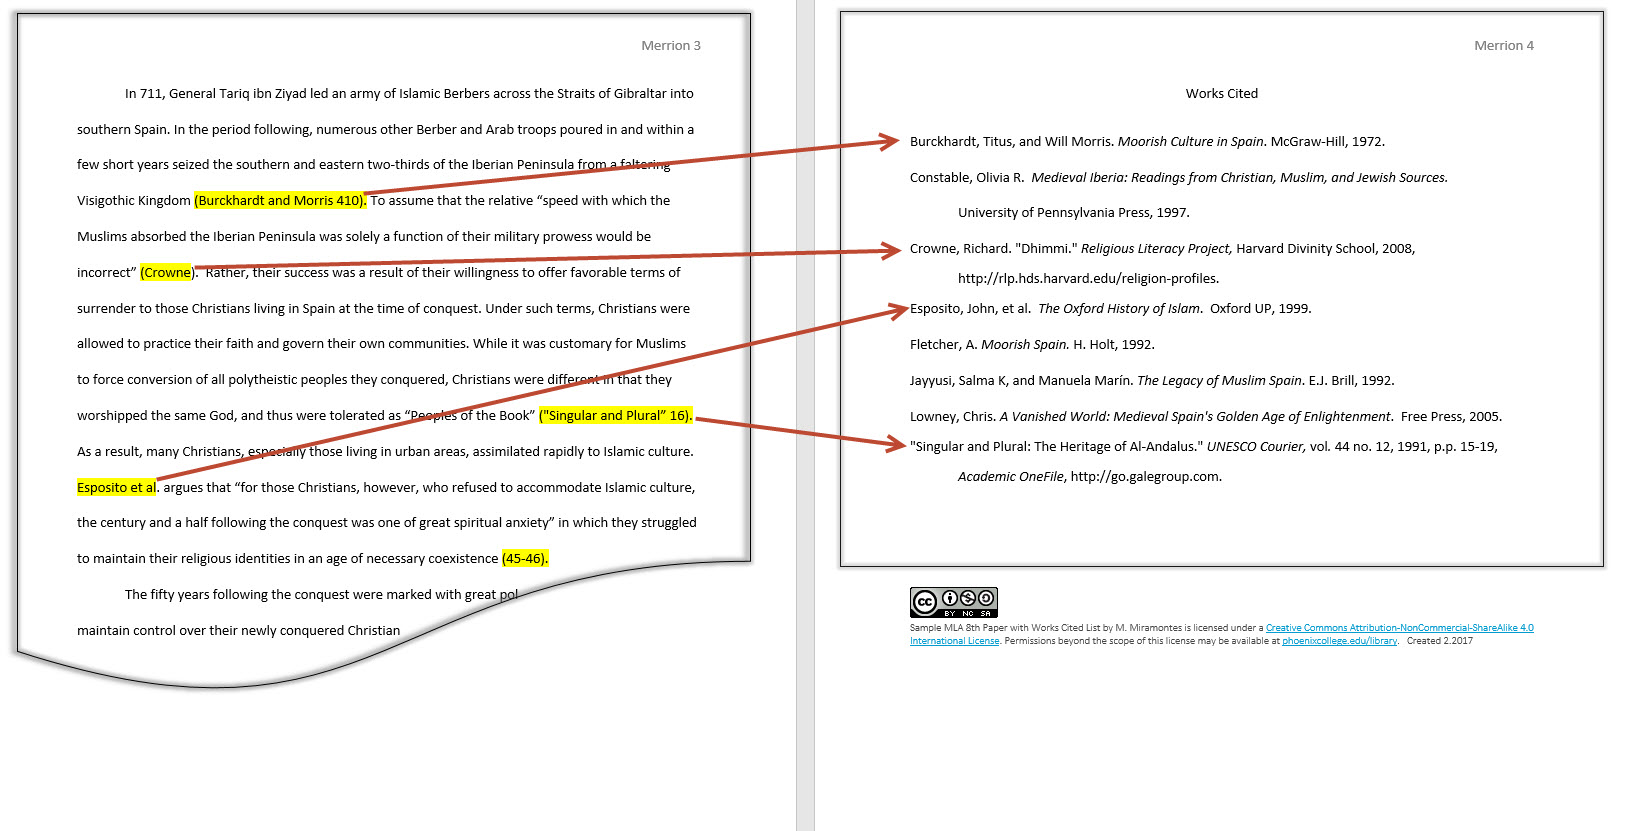 013 Mla Works Cited Image How To Quote Book In An Essay Formidable A Apa Style With Multiple Authors Full